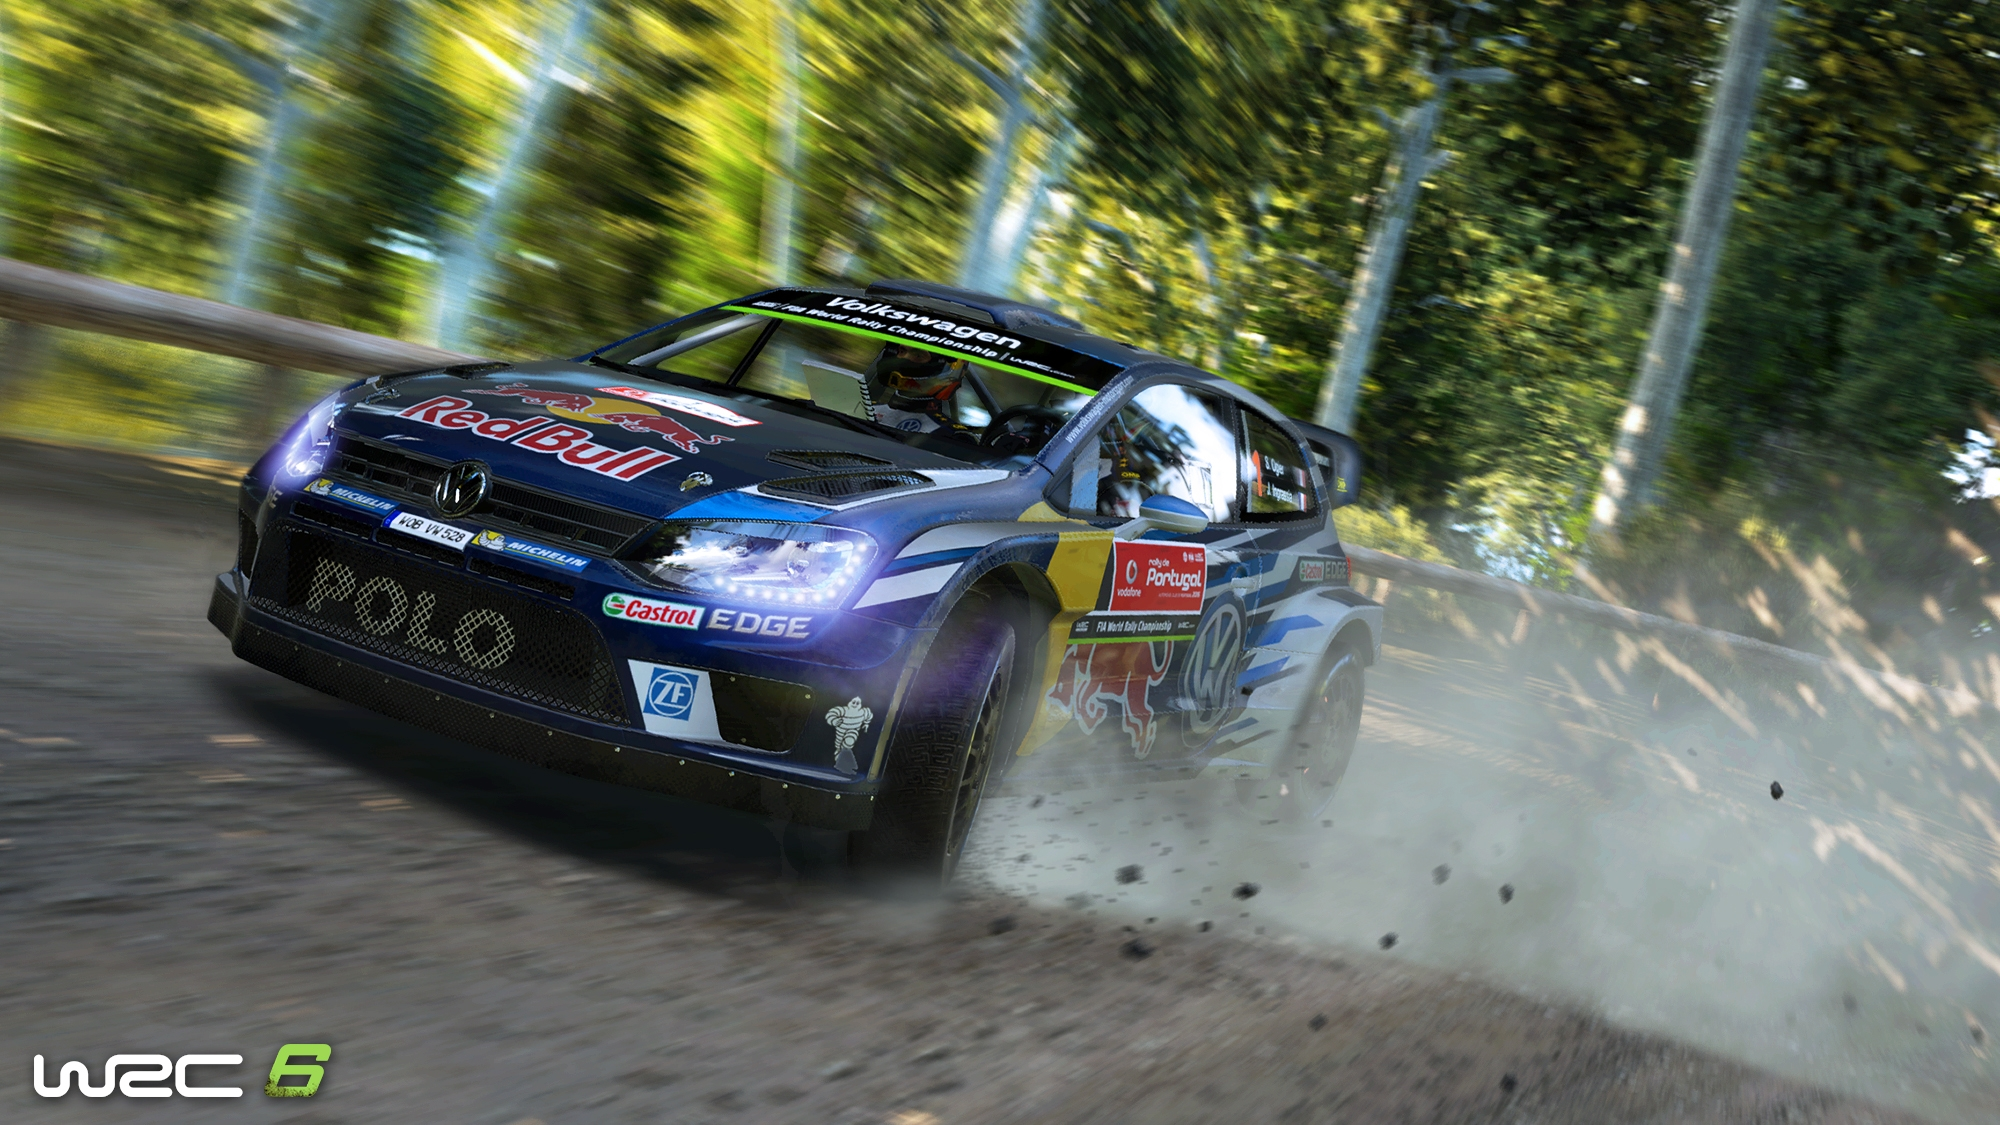 wrc 6 le test 200 km h sur pc xbox one et ps4. Black Bedroom Furniture Sets. Home Design Ideas